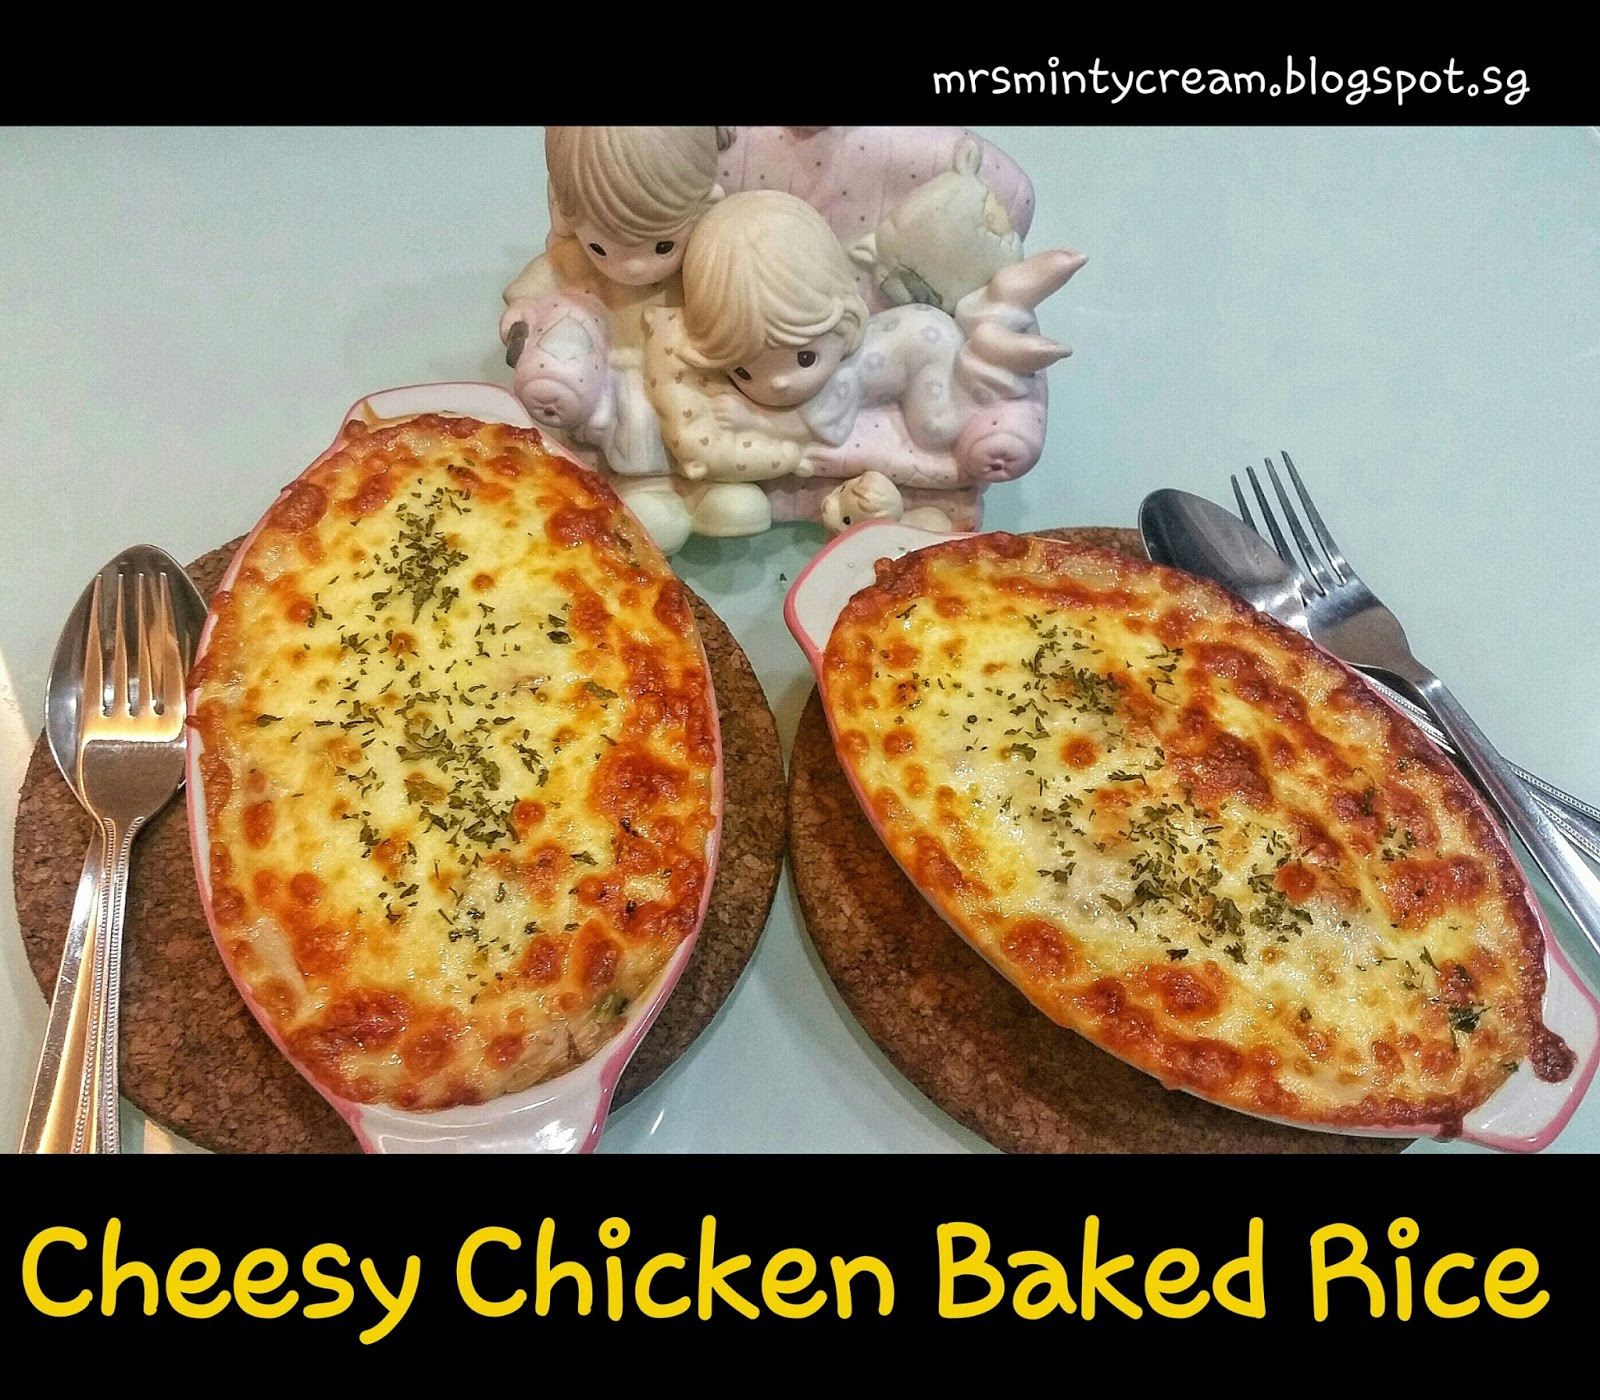 Cheesy Chicken Baked Rice